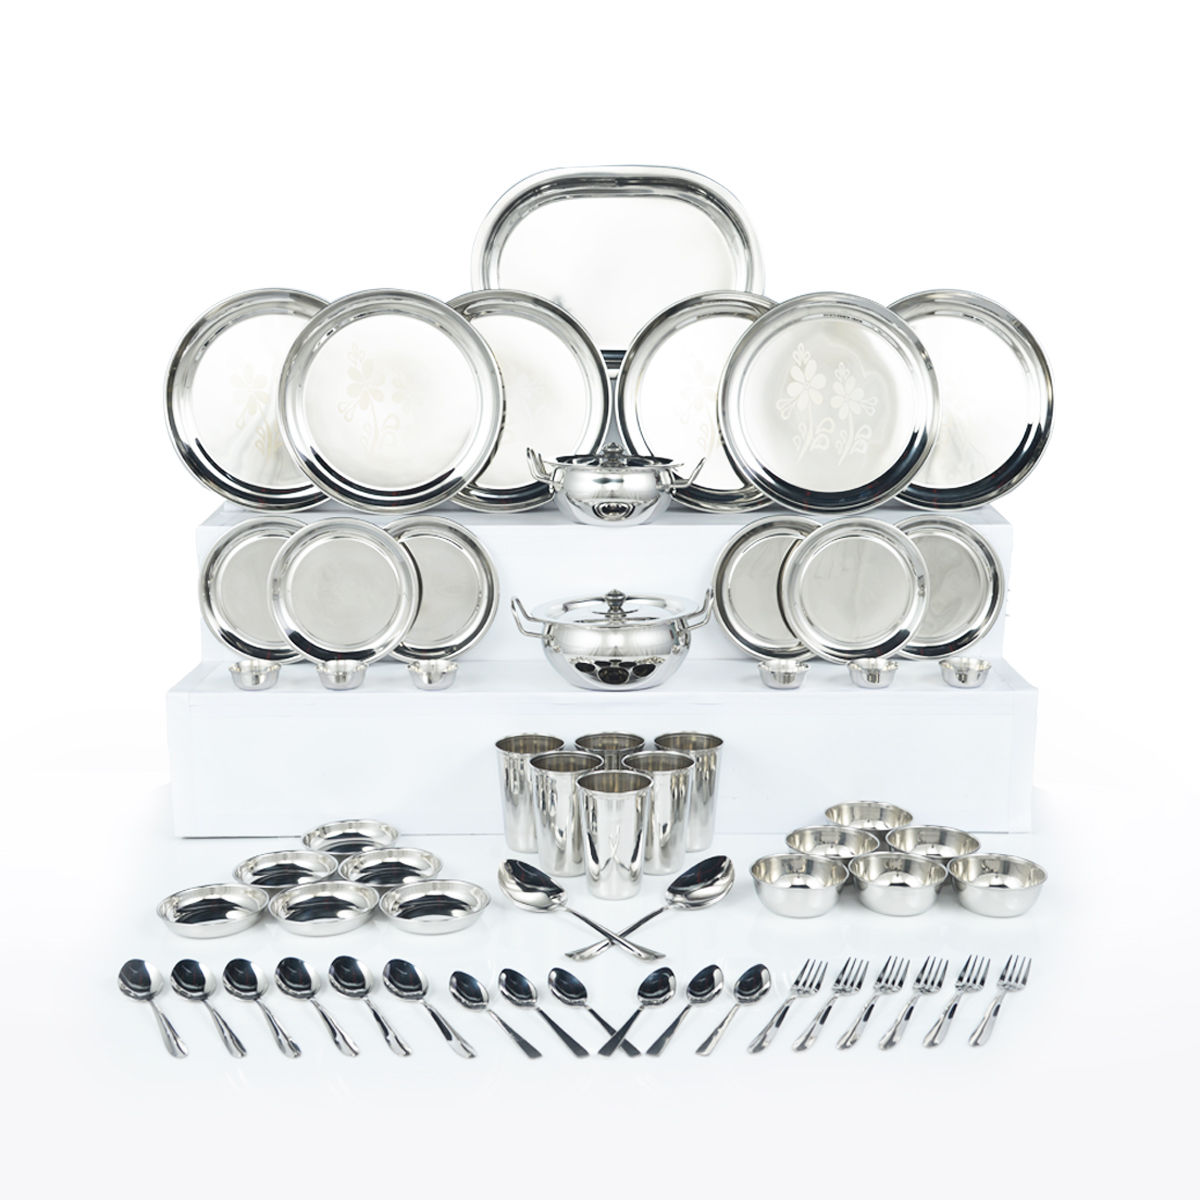 Buy 61 Pcs Designer Stainless Steel Dinner Set Online At Best Price